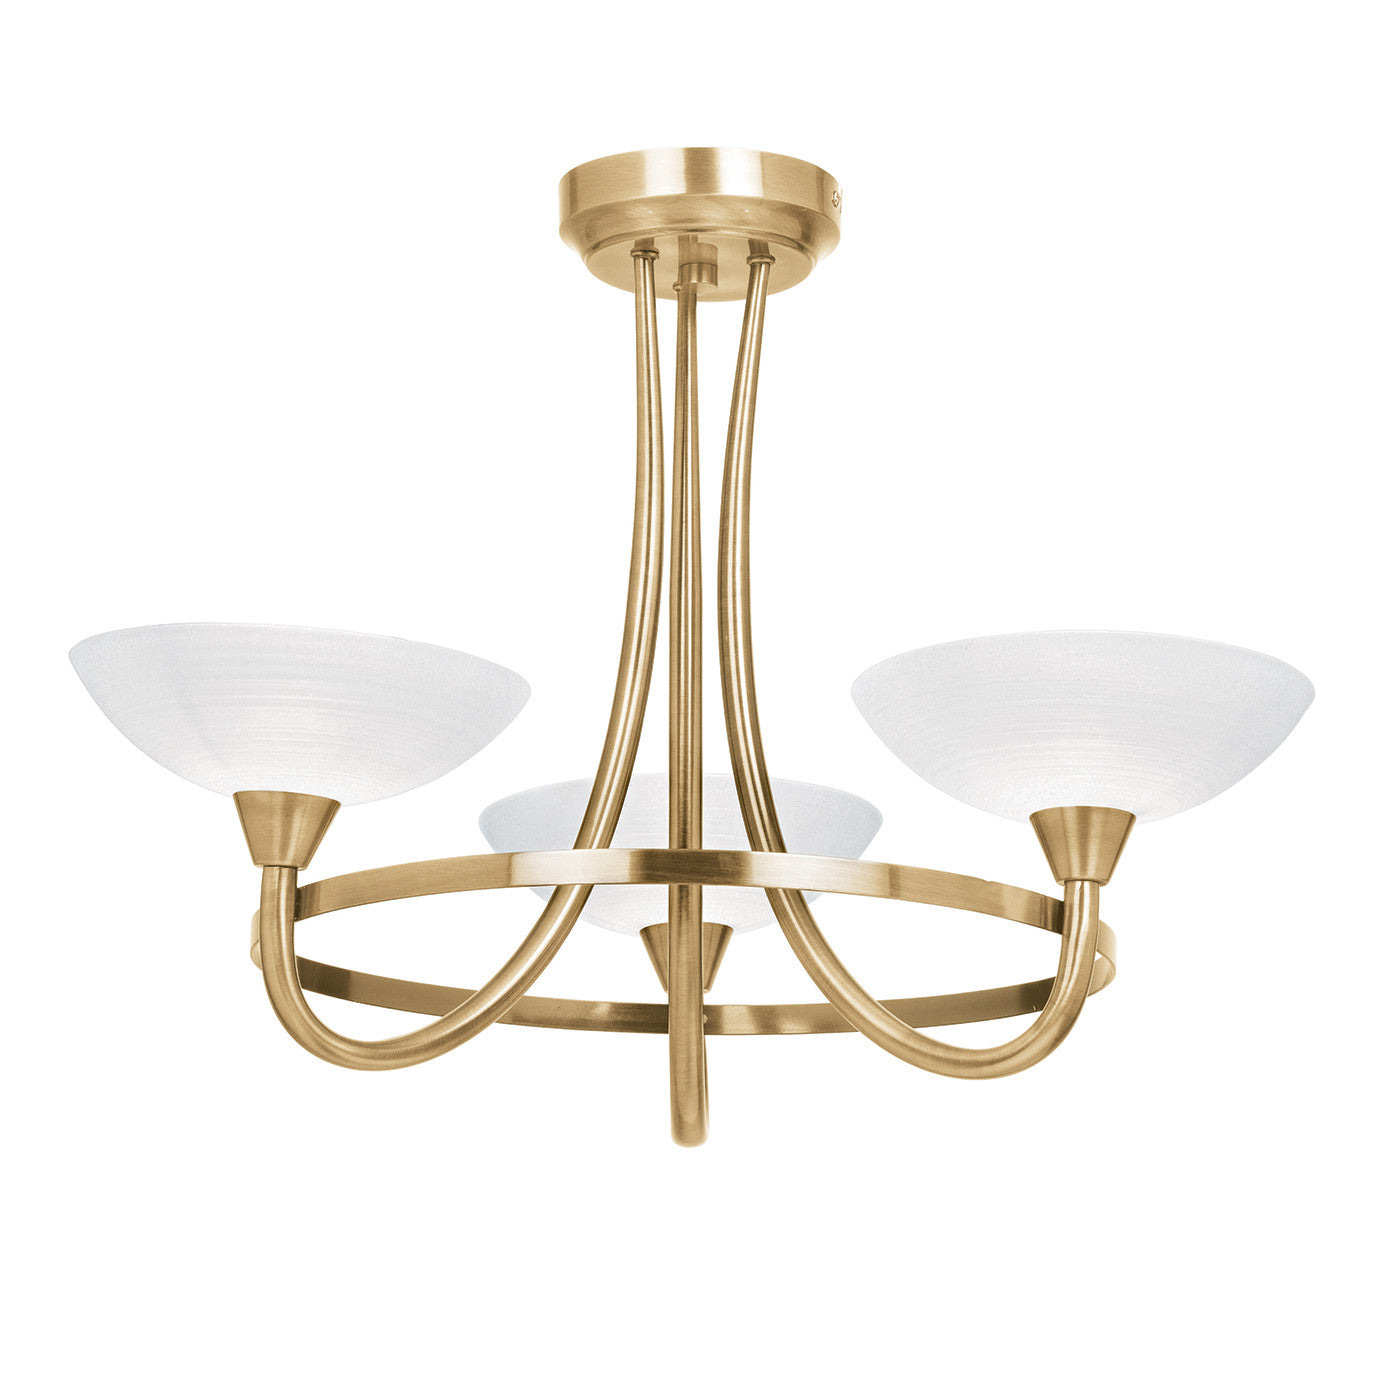 Cagney Antqiue Brass 3 Arm Ceiling Light